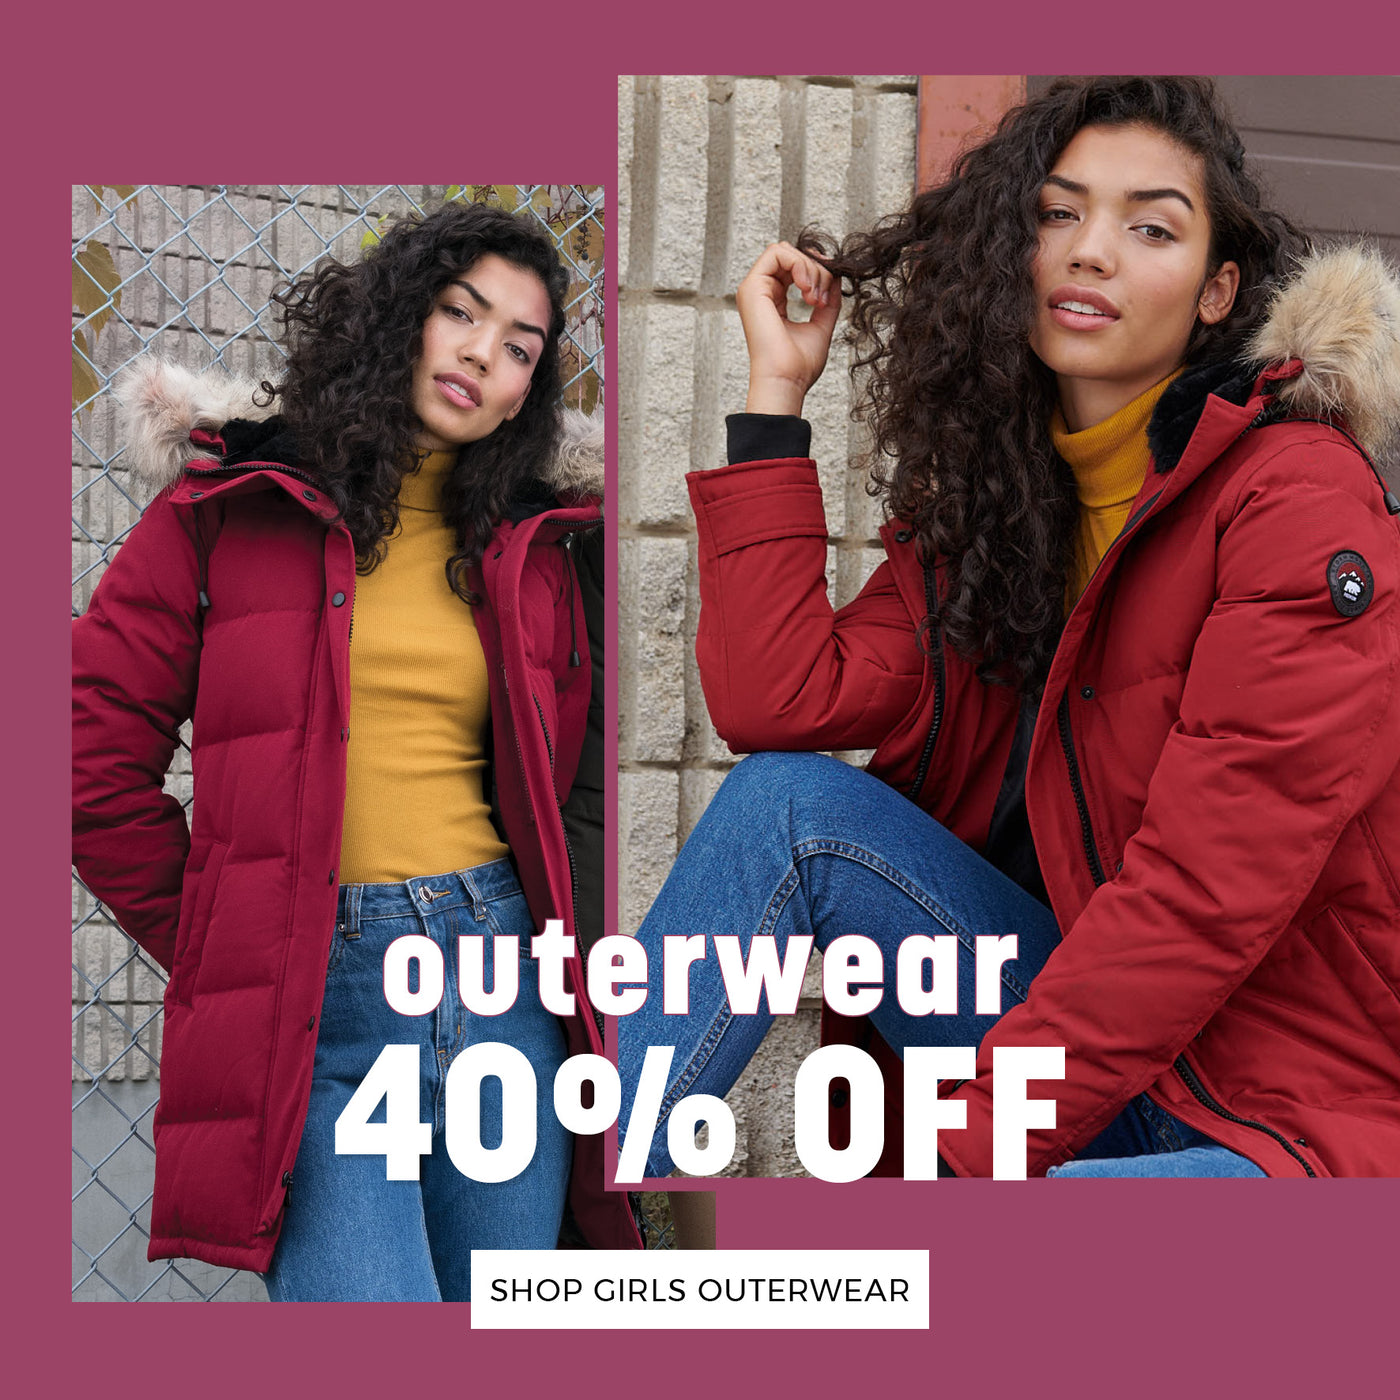 Stitches | Outerwear 40% Off - Shop Girls Outerwear